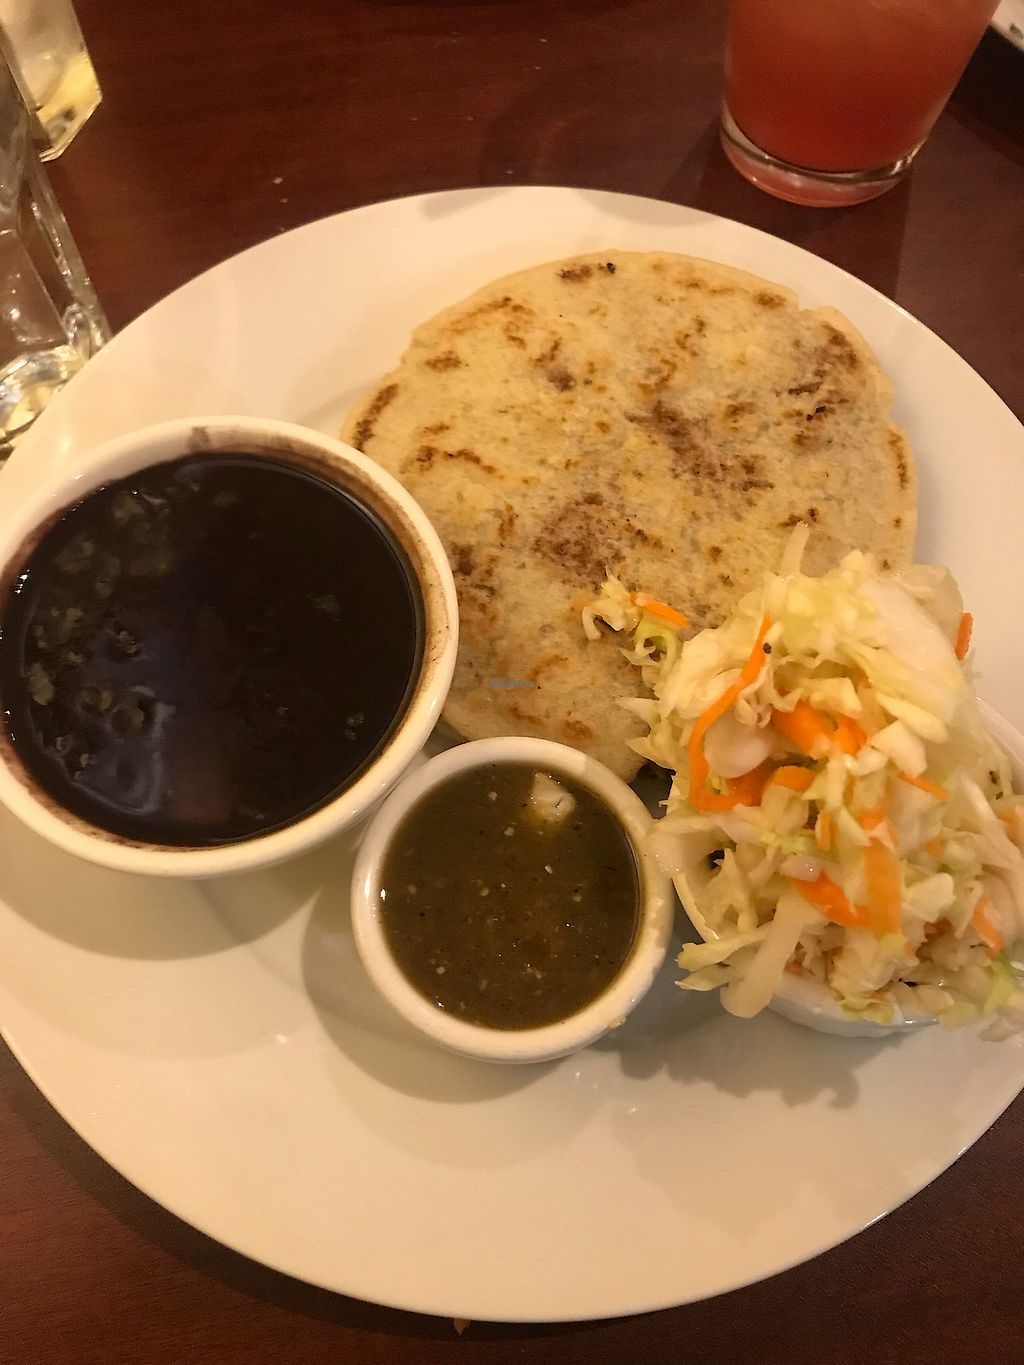 """Photo of un solo sol  by <a href=""""/members/profile/Vegan_Ness"""">Vegan_Ness</a> <br/>Spinach pupusa/ pinto bean pupusa w/black beans  <br/> October 7, 2017  - <a href='/contact/abuse/image/55390/312562'>Report</a>"""